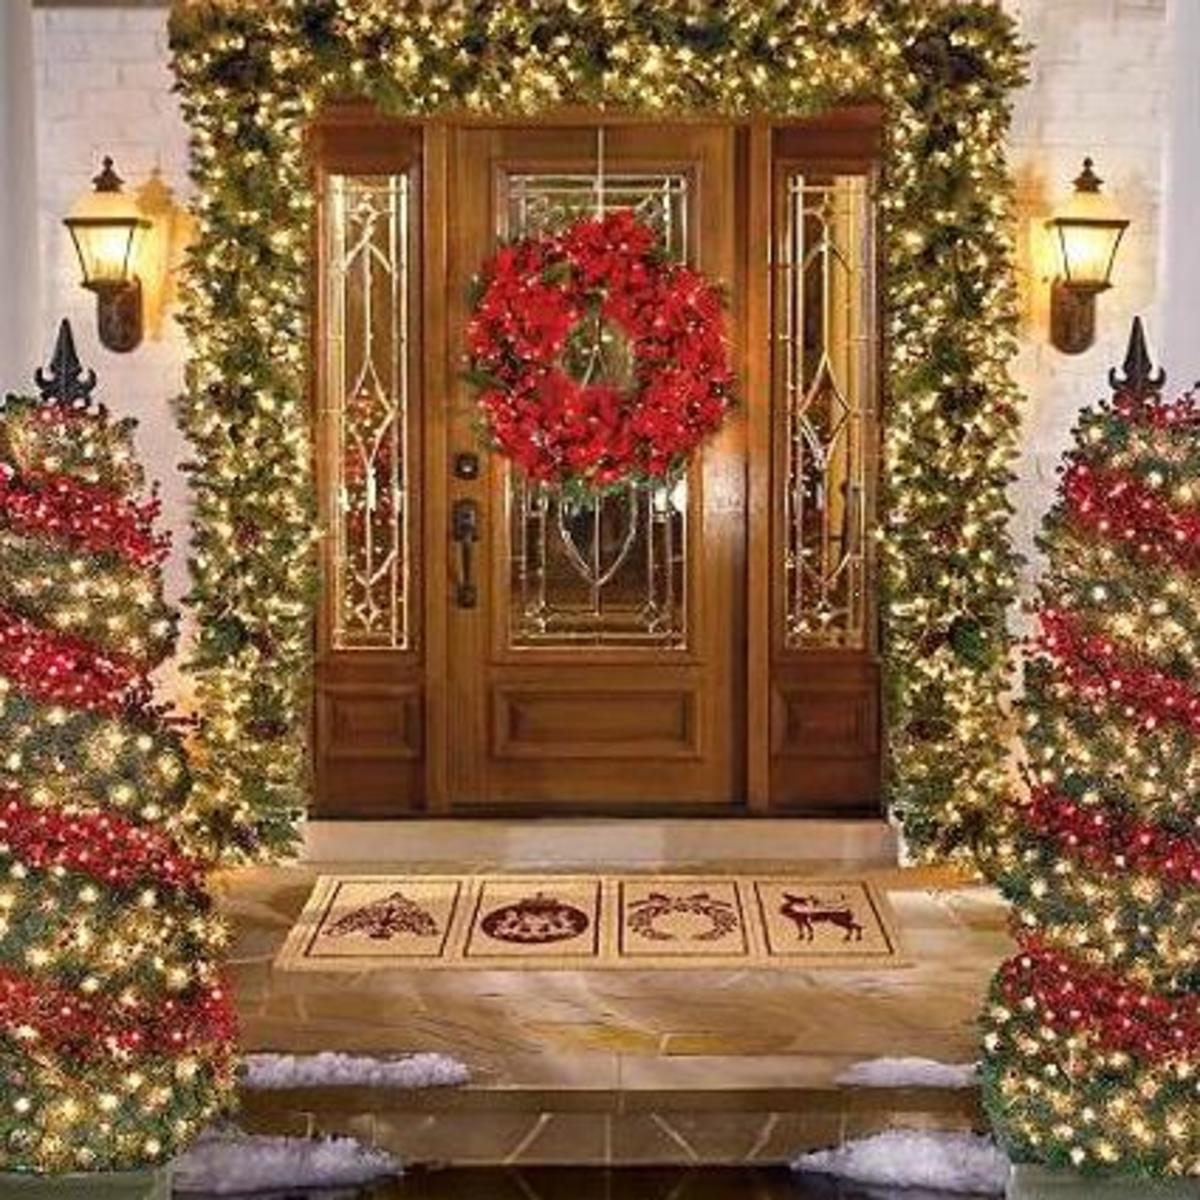 Garland christmas lights hubpages wreath with christmas lights on entry door mozeypictures Images